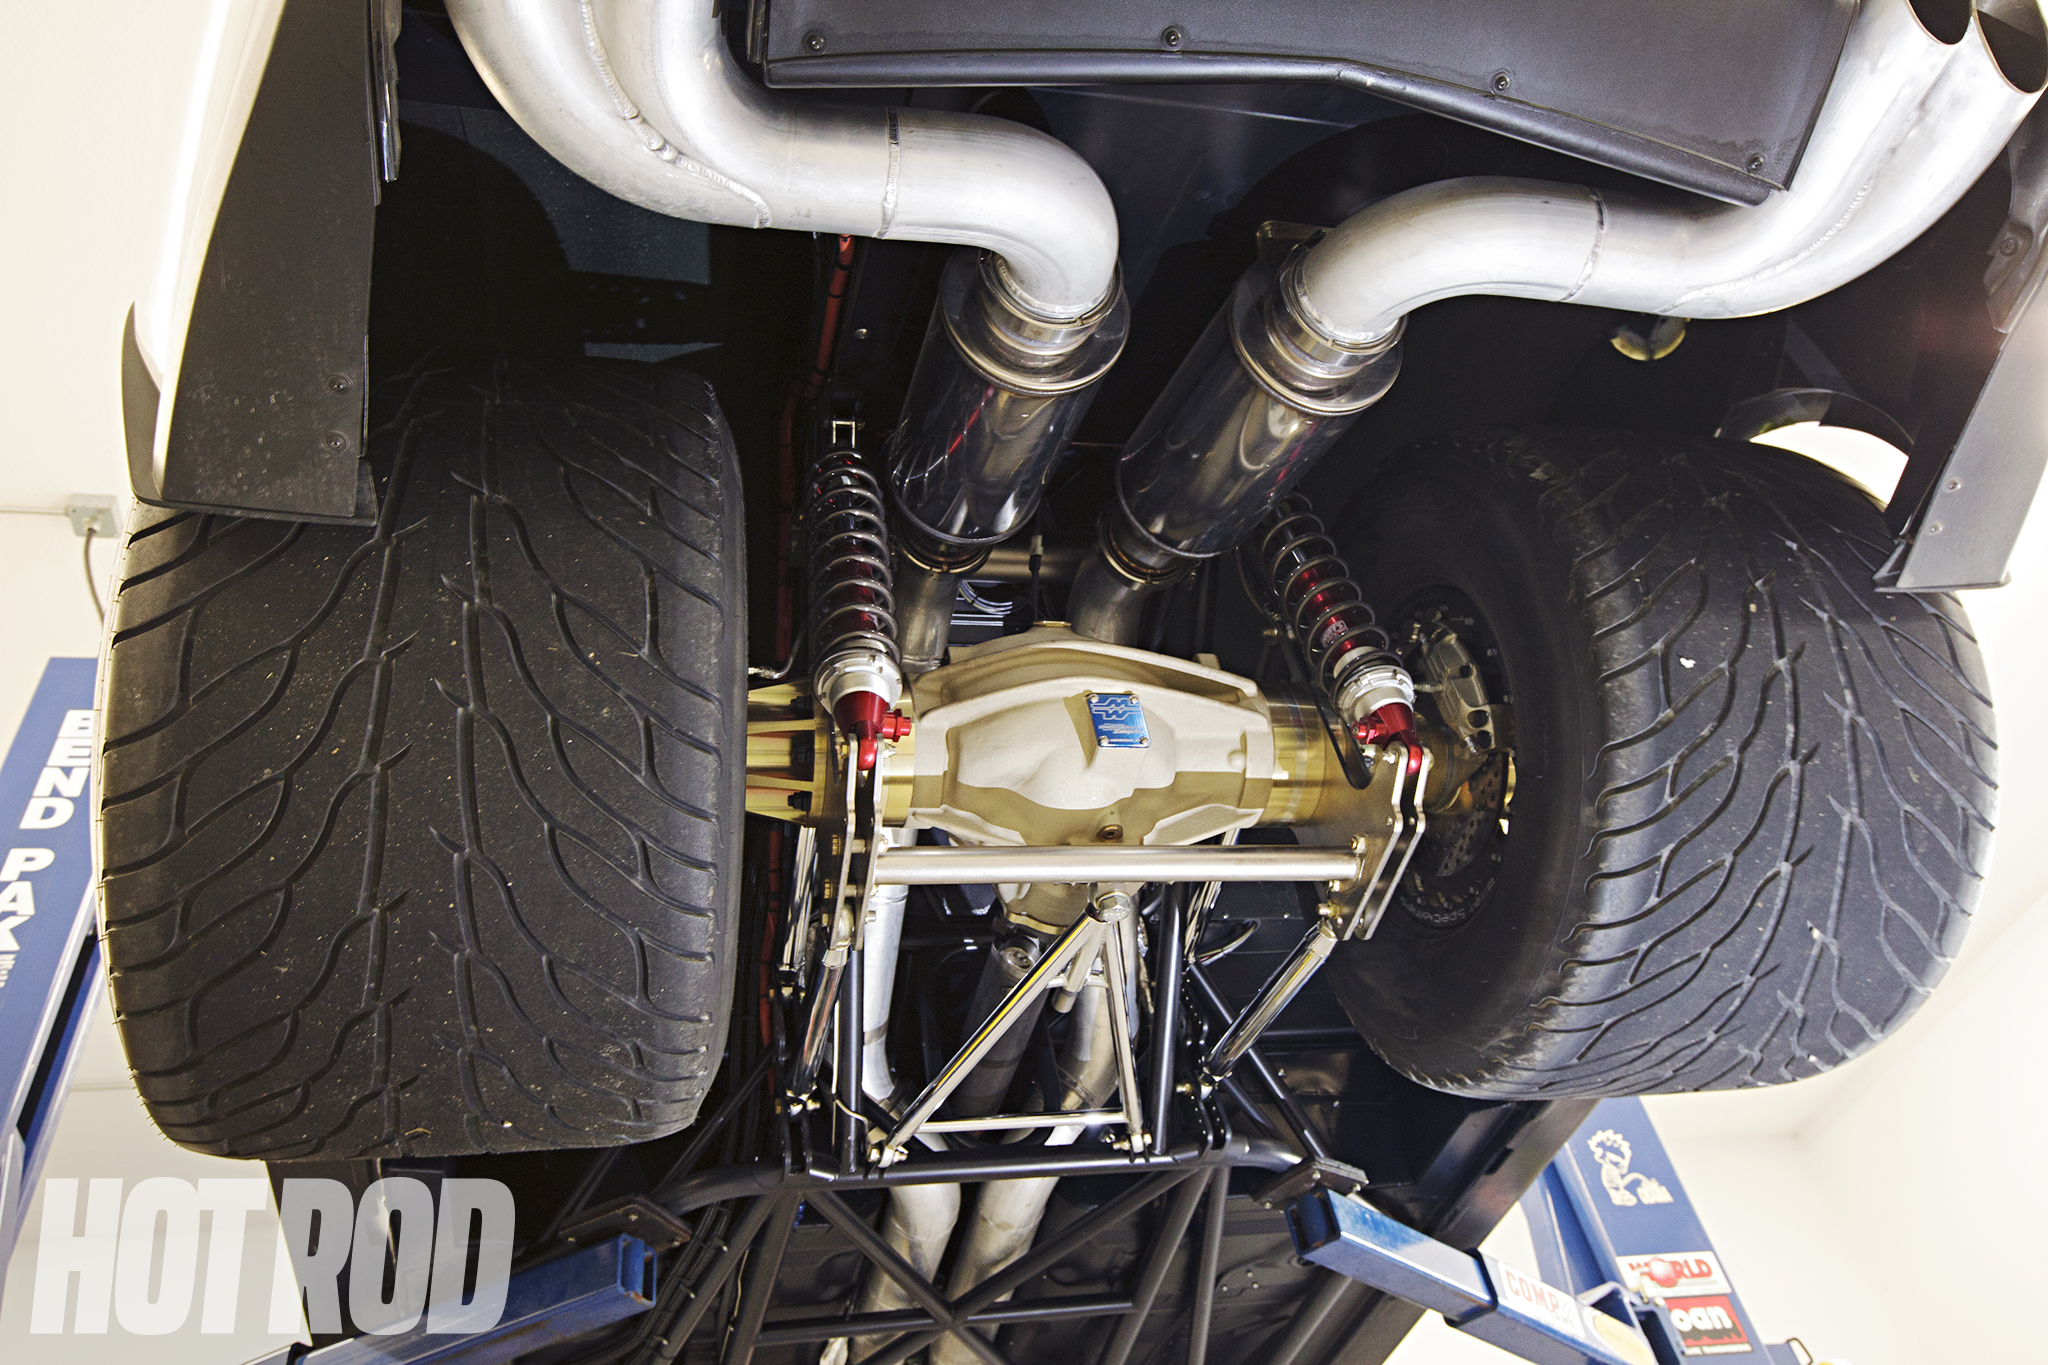 Once you get a look at this angle, it becomes apparent this is not a stock or even mildly massaged Camaro. Mark Williams Enterprises full-floater axle spins 33/22.50-15 Hoosier hoops on 15x15-inch M/T billet wheels. All of this is suspended by a Larson four-link and Santhuff coilovers, and tied to the front suspension. The 4-inch stainless exhaust ends with the stock ZL1 tips.